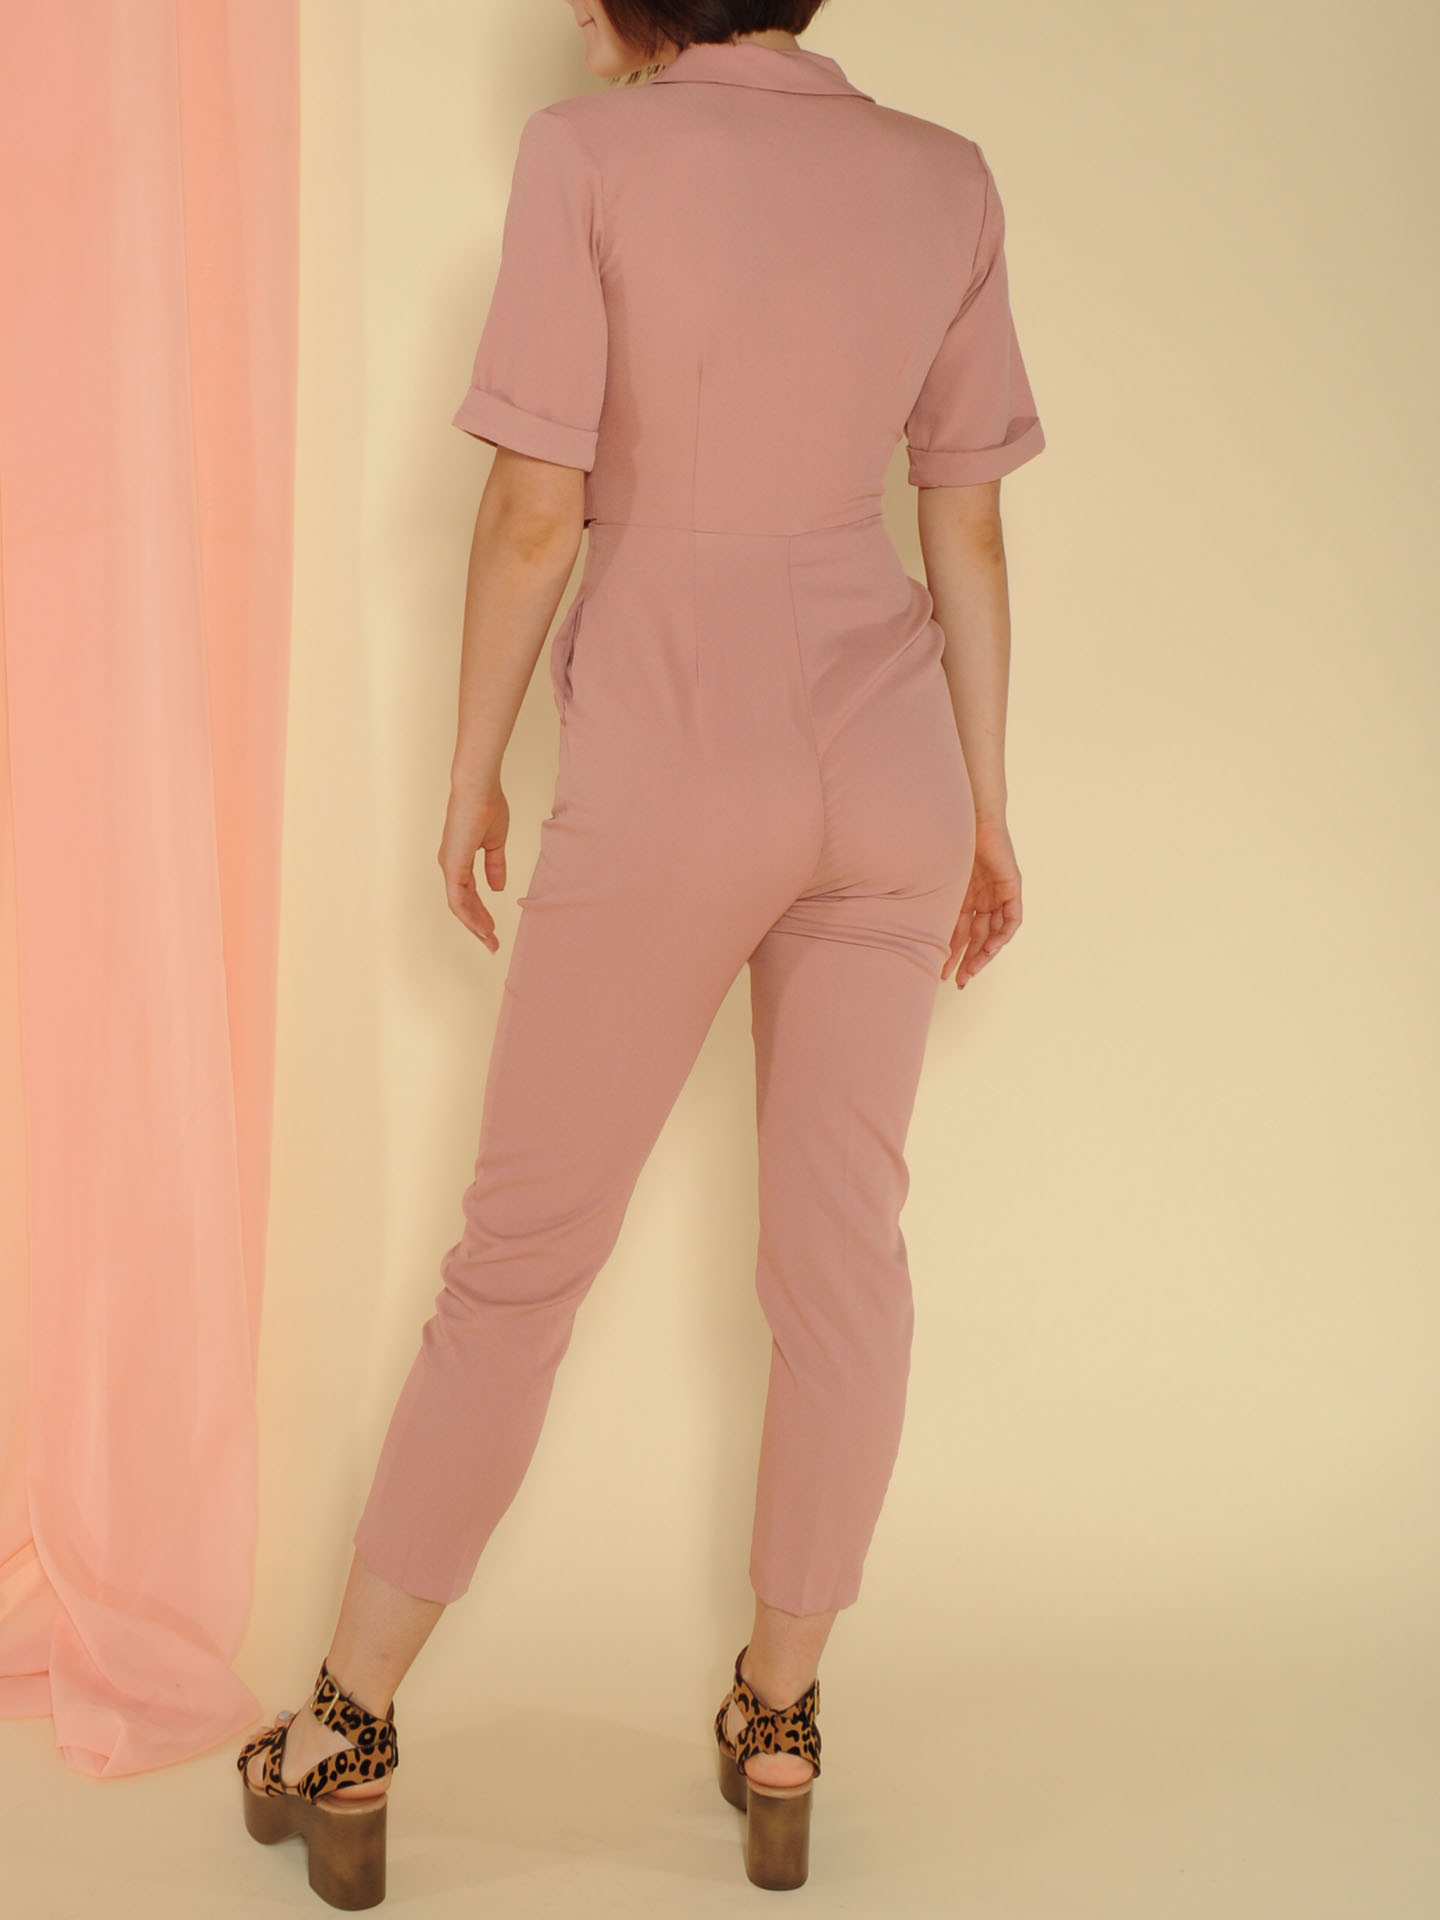 Sally Jumpsuit Belted Skinny Classy Pink One Piece Back